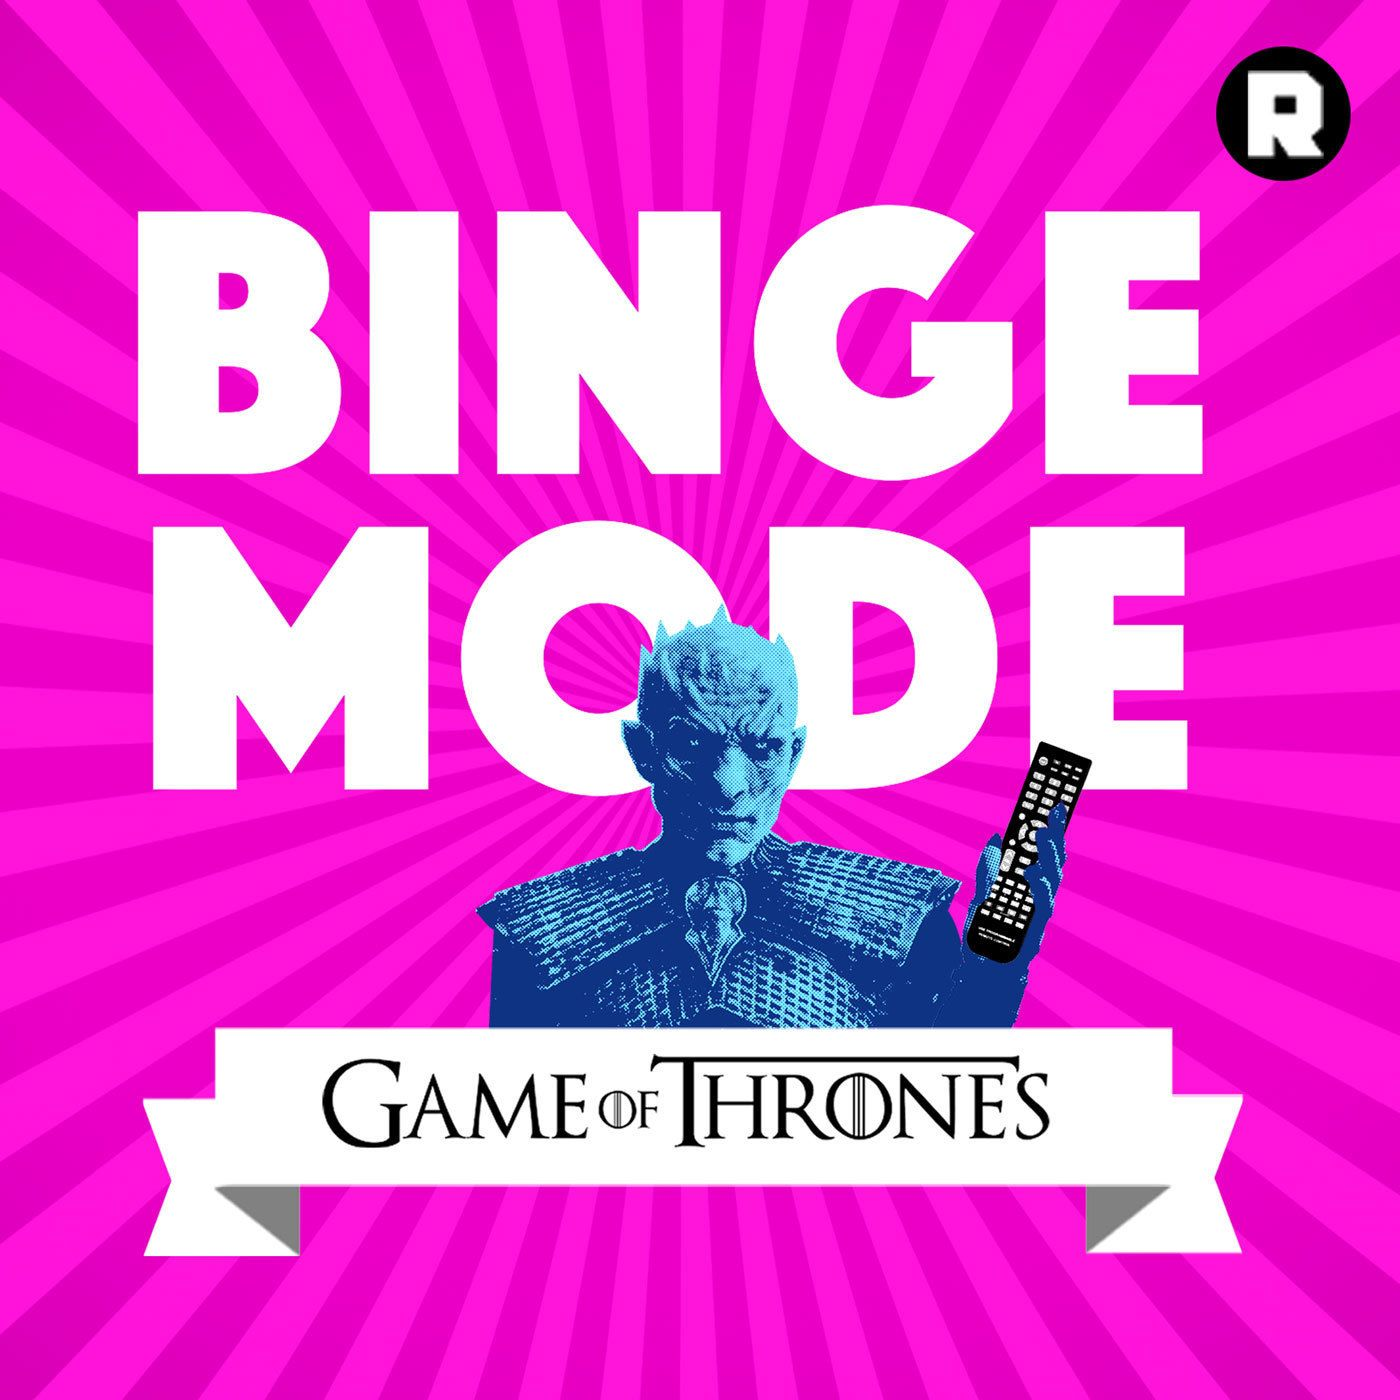 S2E6: The Old Gods and the New | Game of Thrones